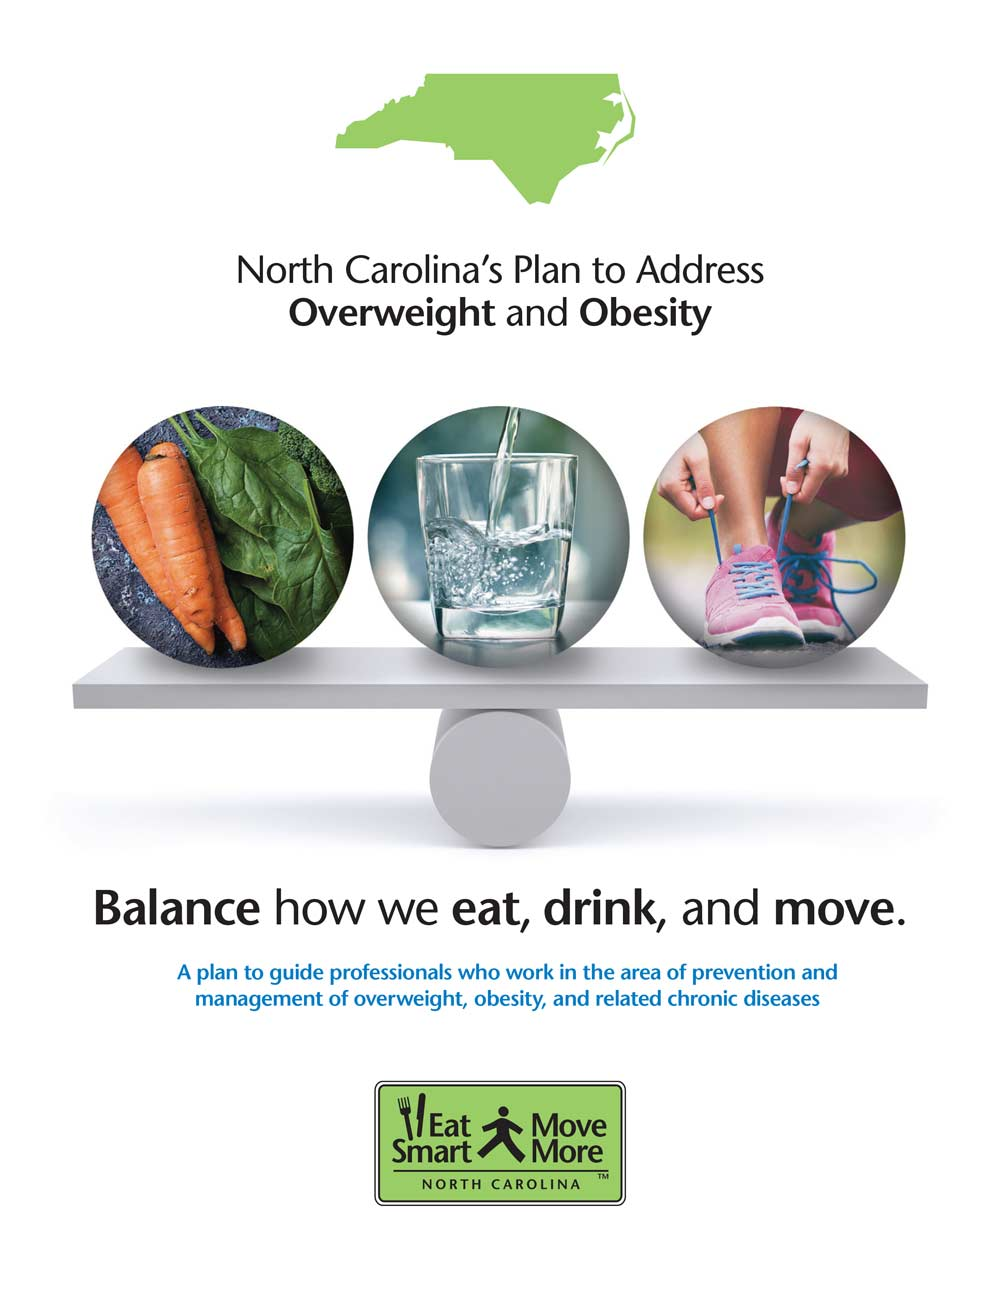 North Carolina's Plan to Address Overweight and Obesity